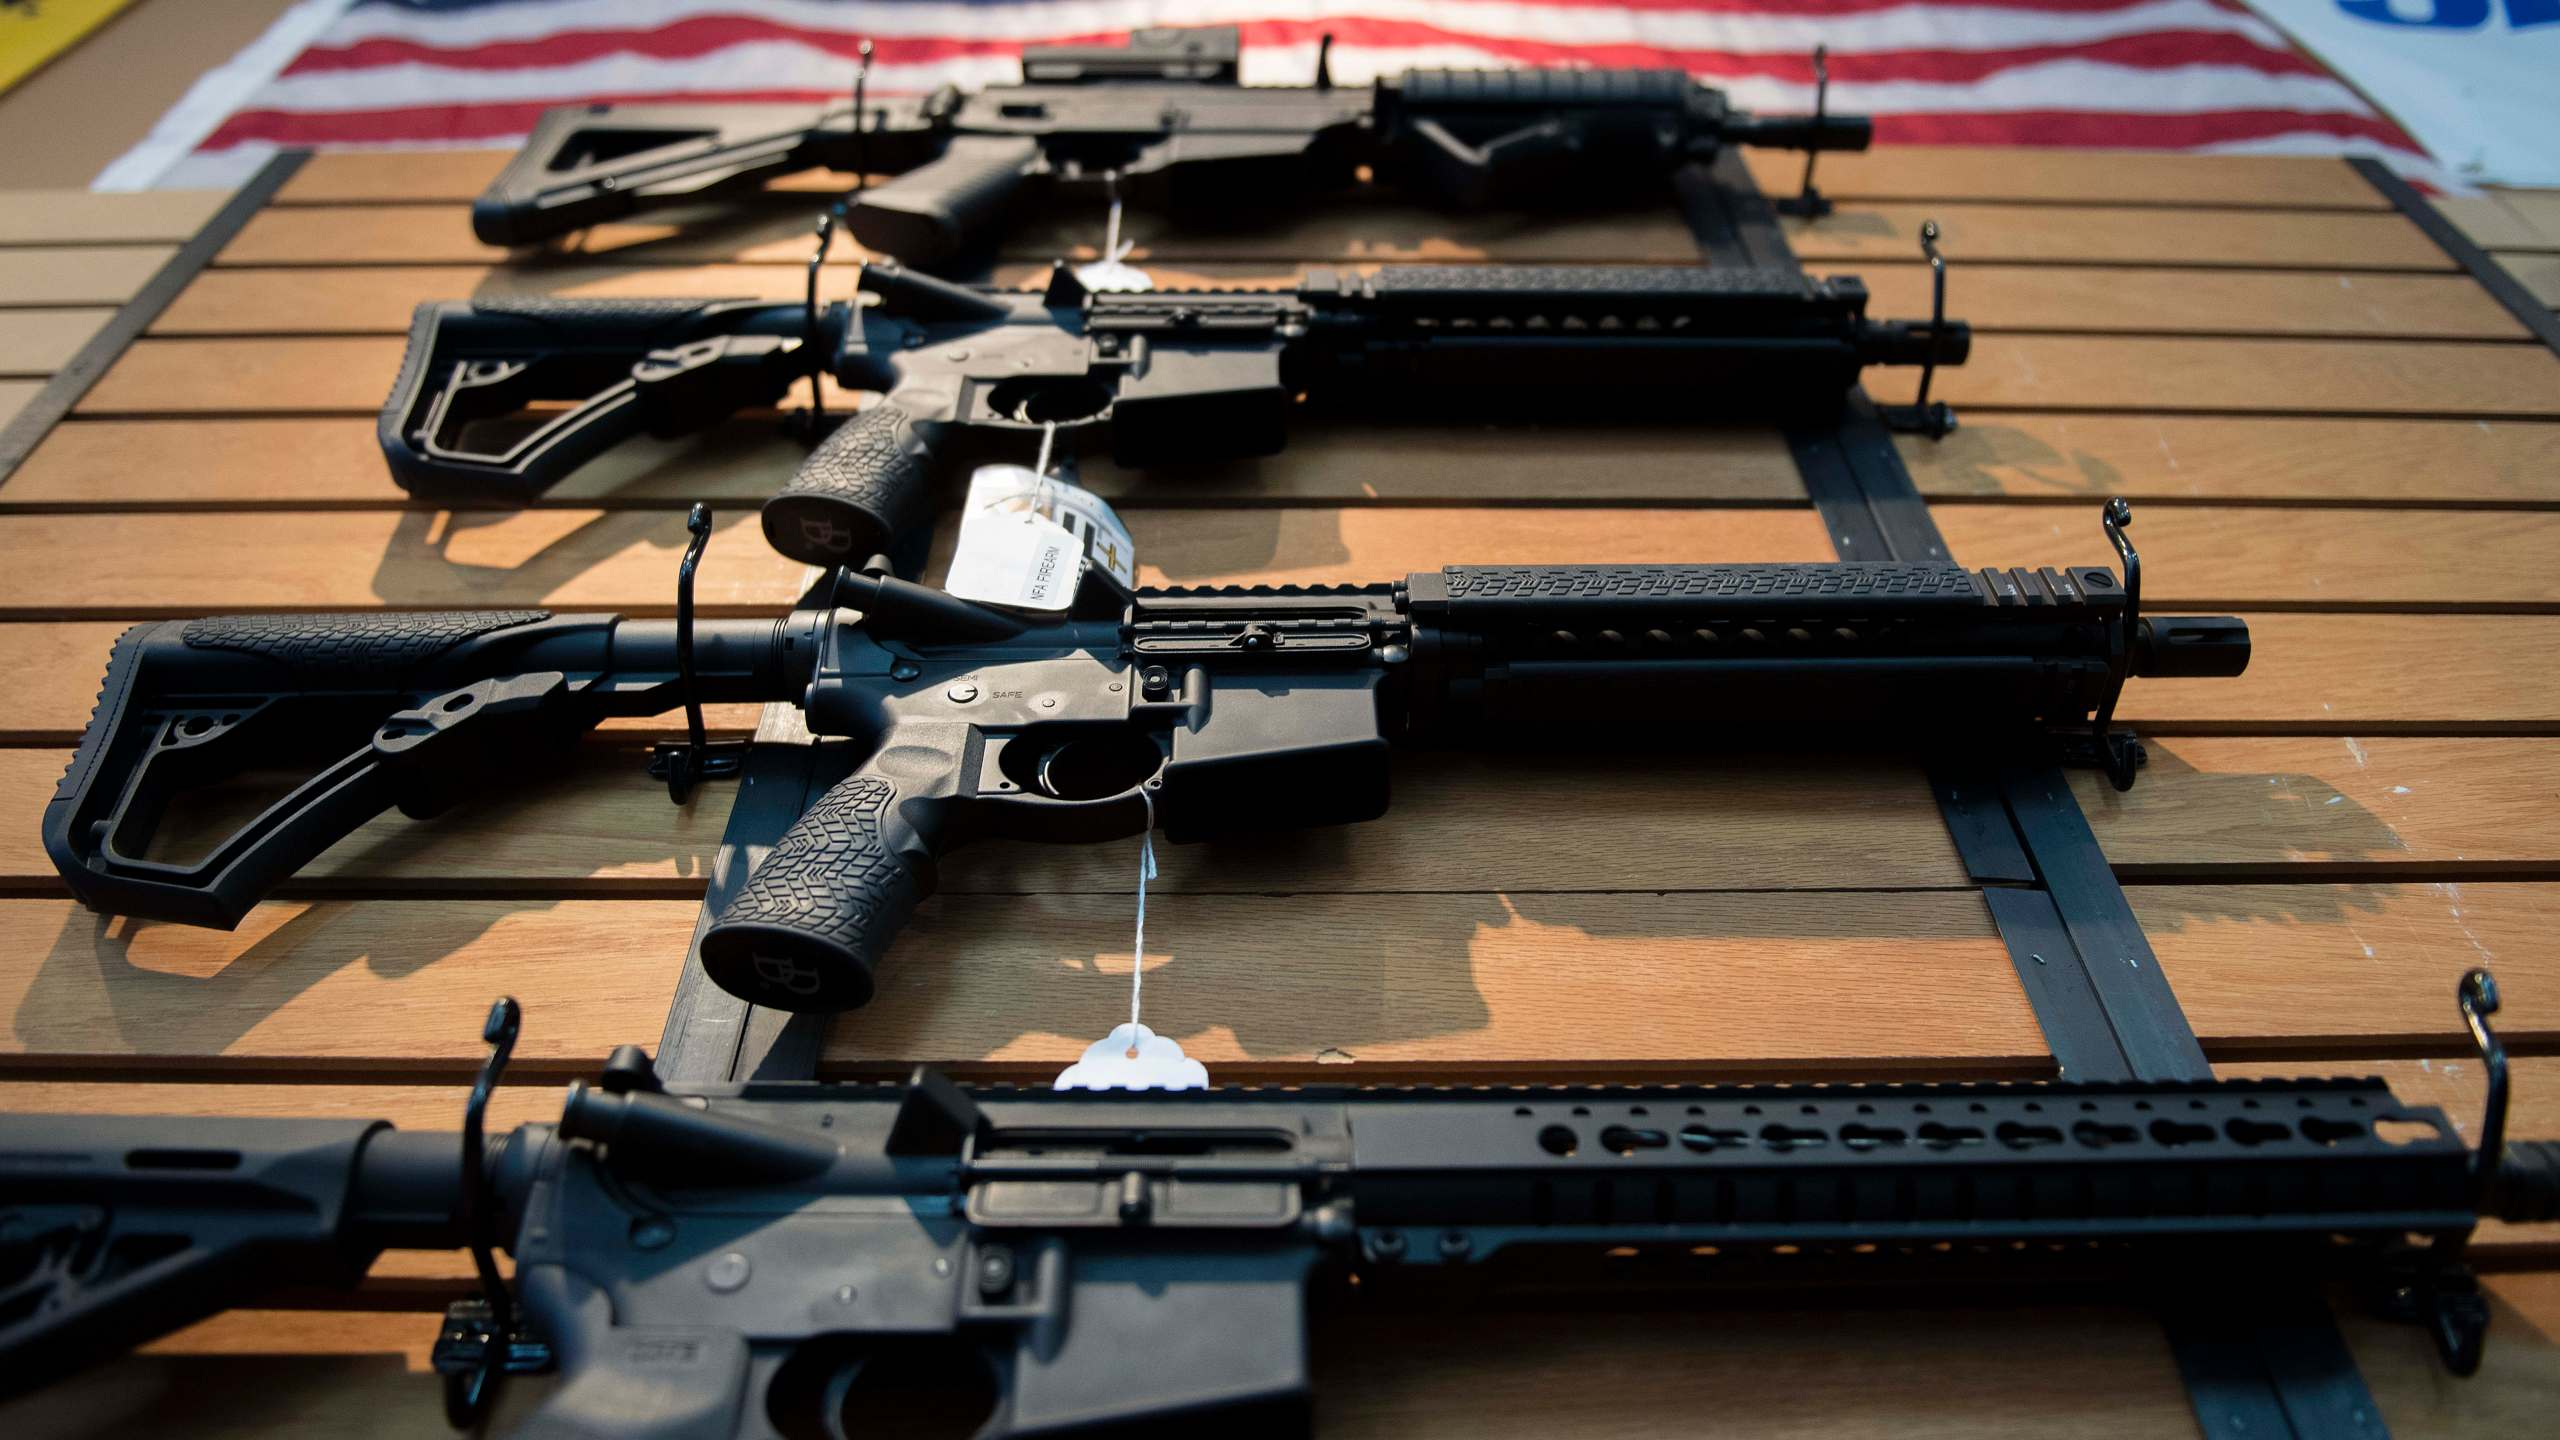 Assault rifles hang on the wall for sale at Blue Ridge Arsenal in Chantilly, Virginia, on Oct. 6, 2017. (Credit: Jim Watson / AFP / Getty Images)